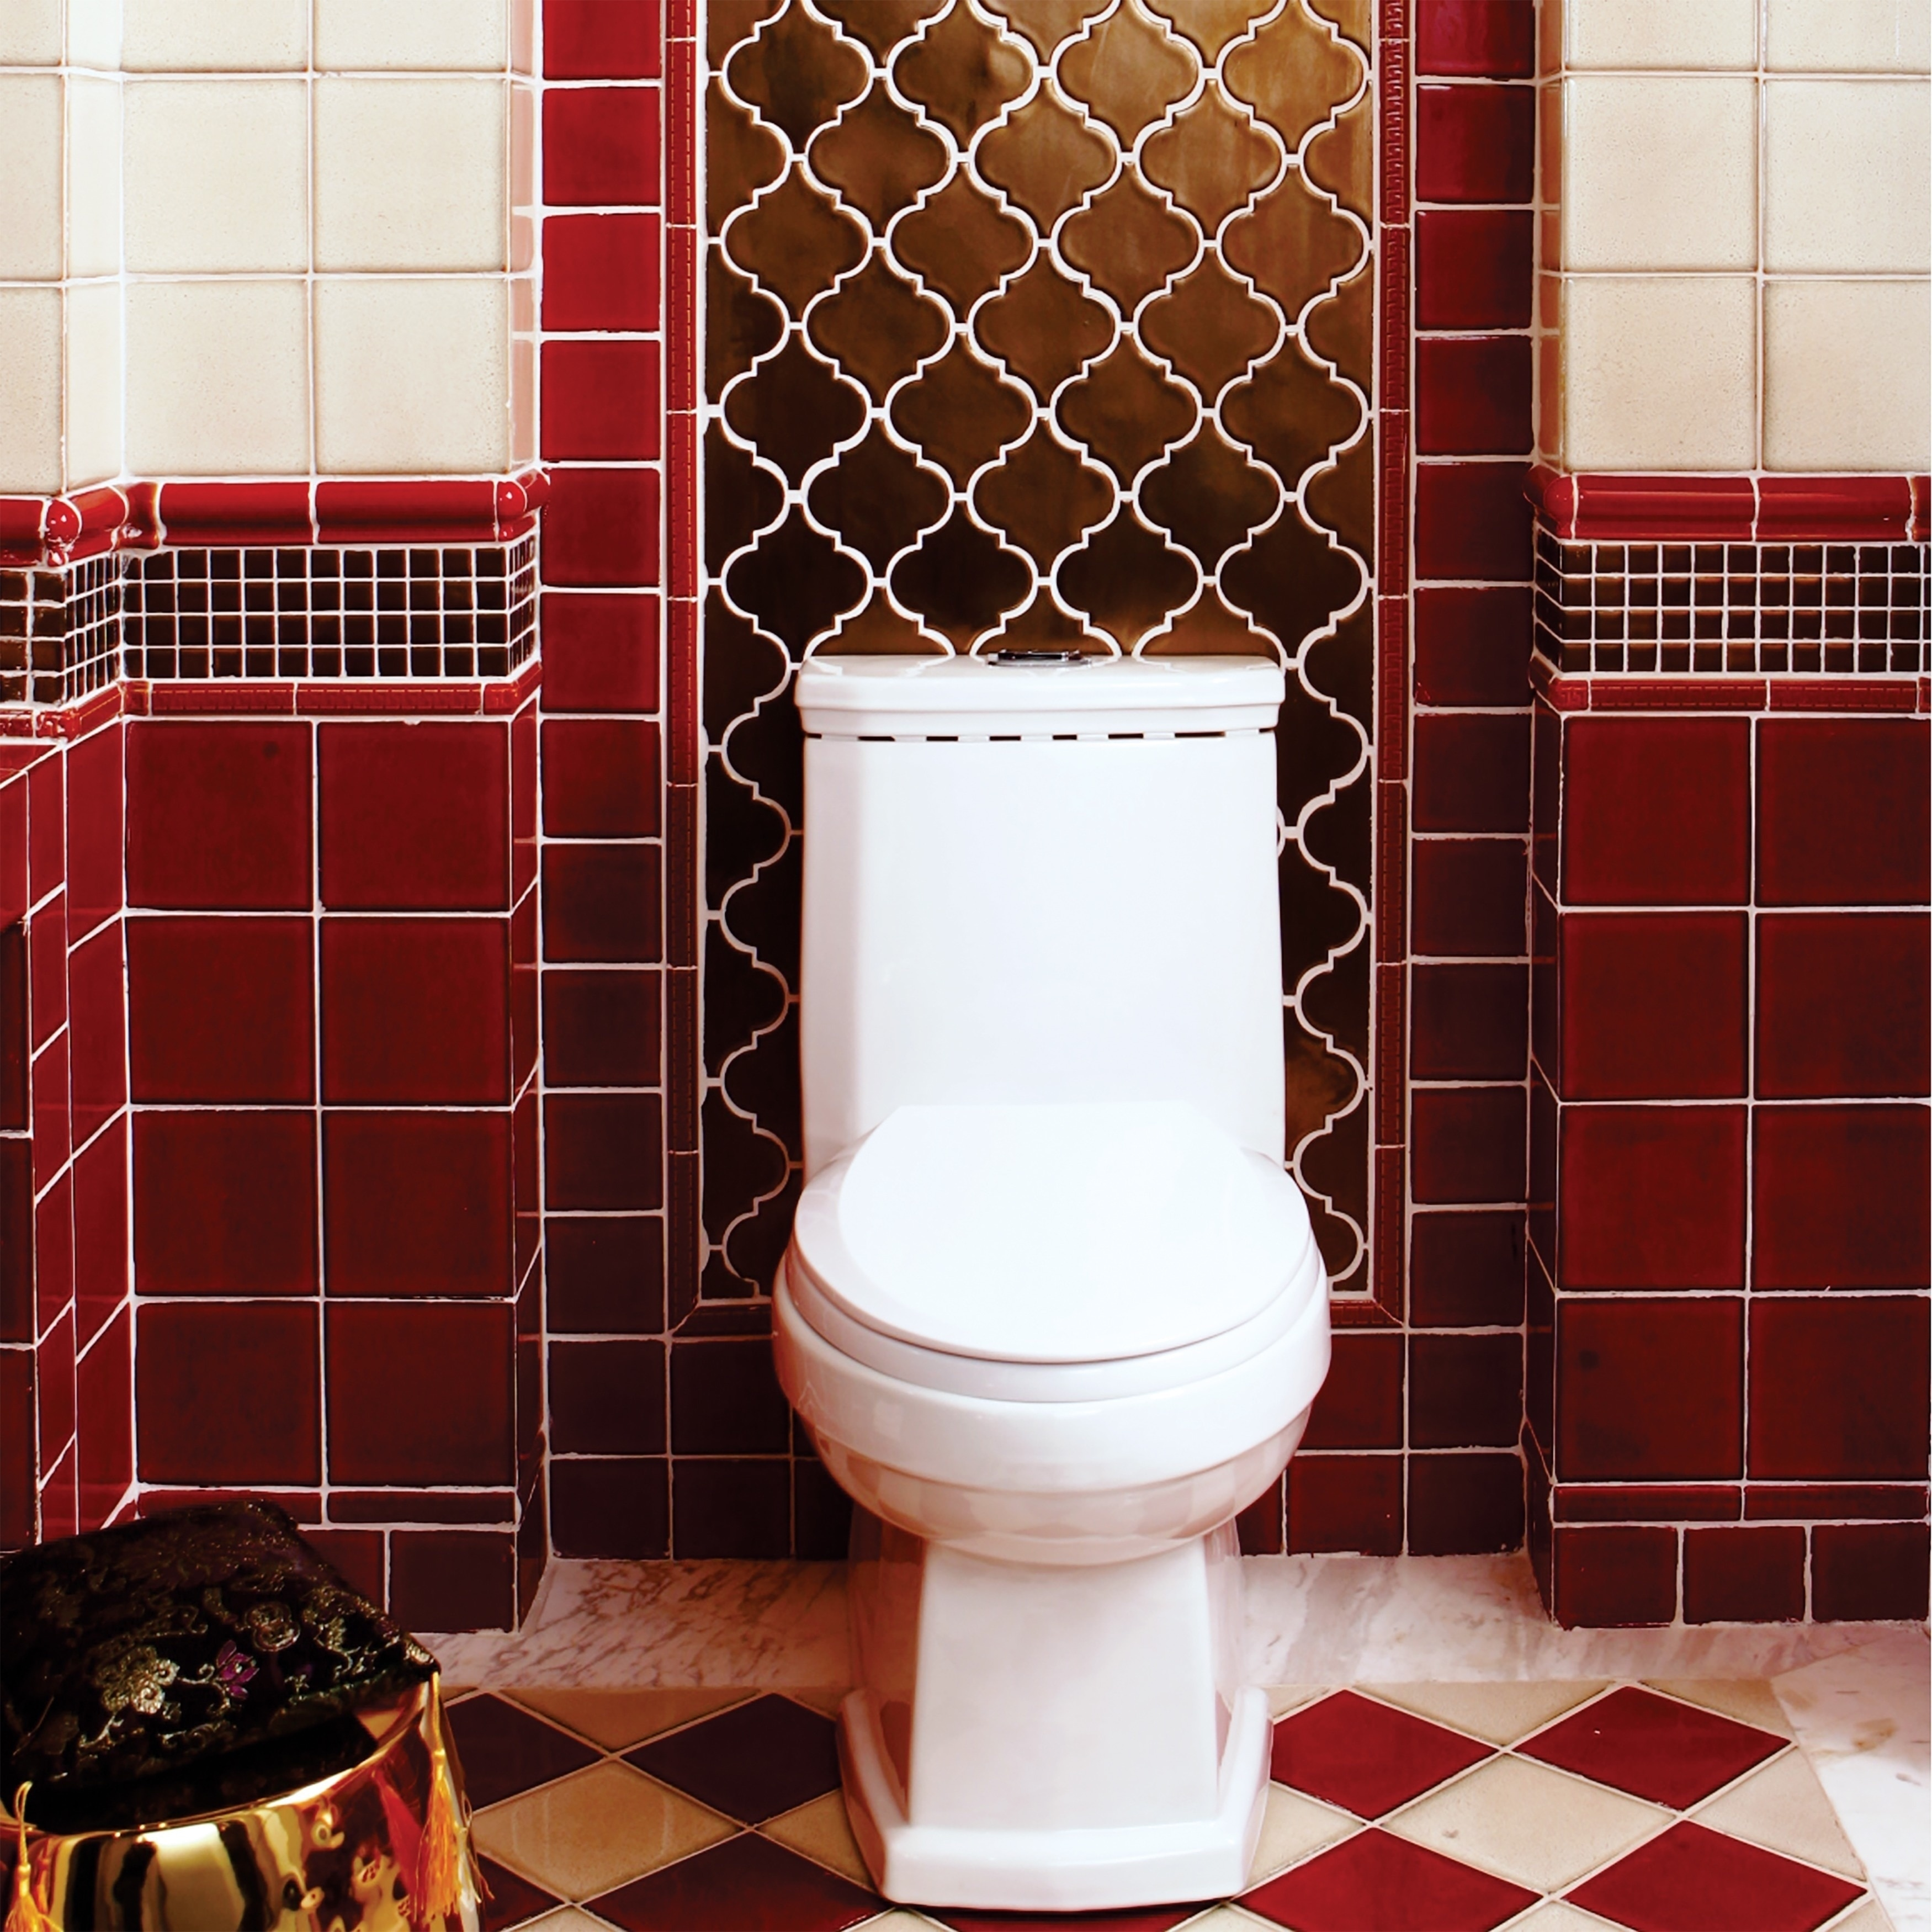 Somertile 4x4-inch Aspect Scarlet Porcelain Floor and Wal...